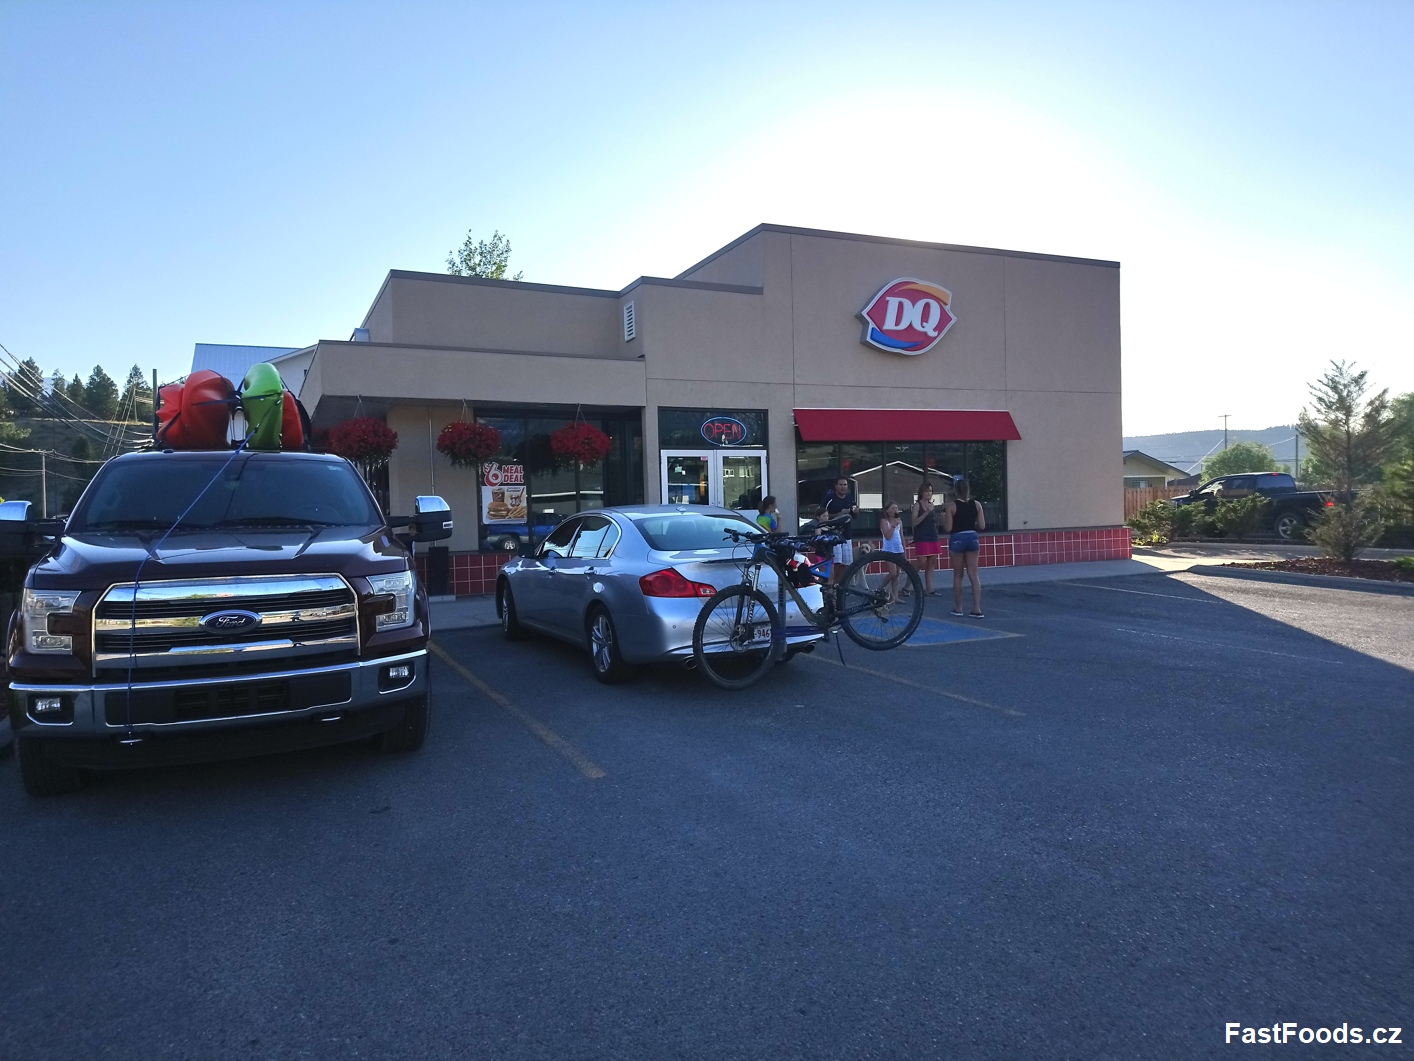 dq grill chill laurierst invermere kanada fastfoods.cz 1